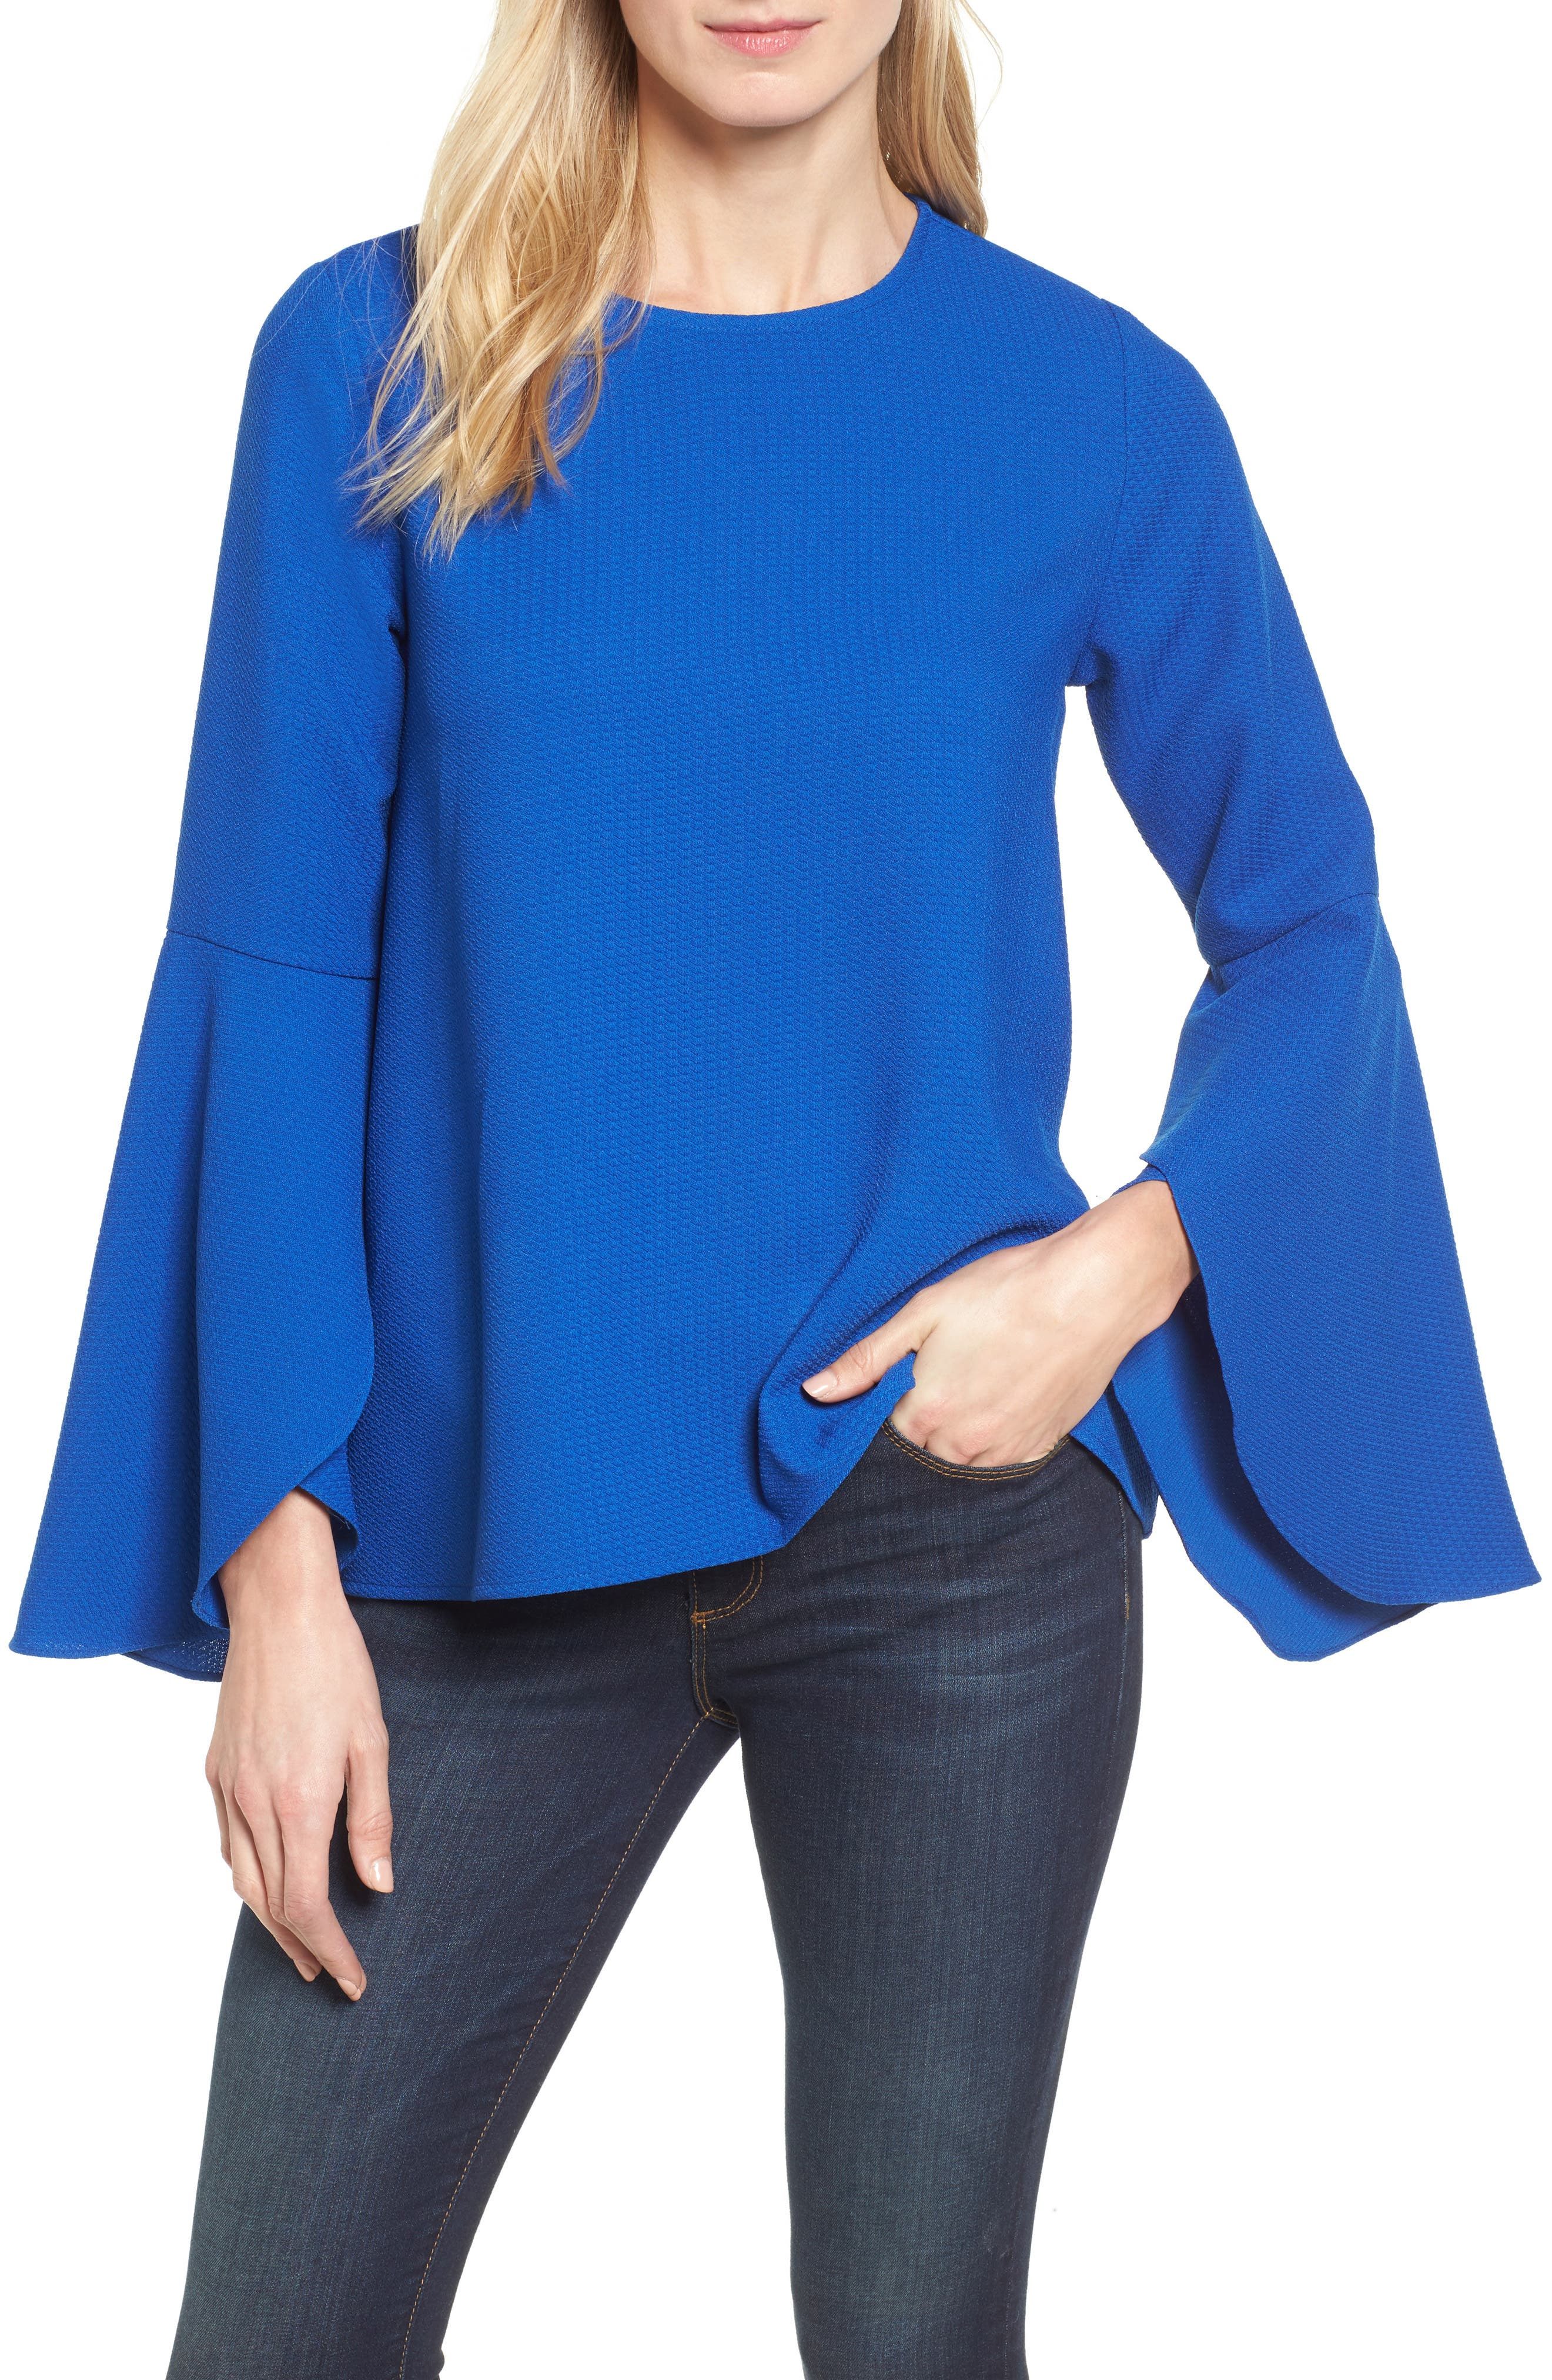 Bell Sleeve Top,                             Main thumbnail 1, color,                             420